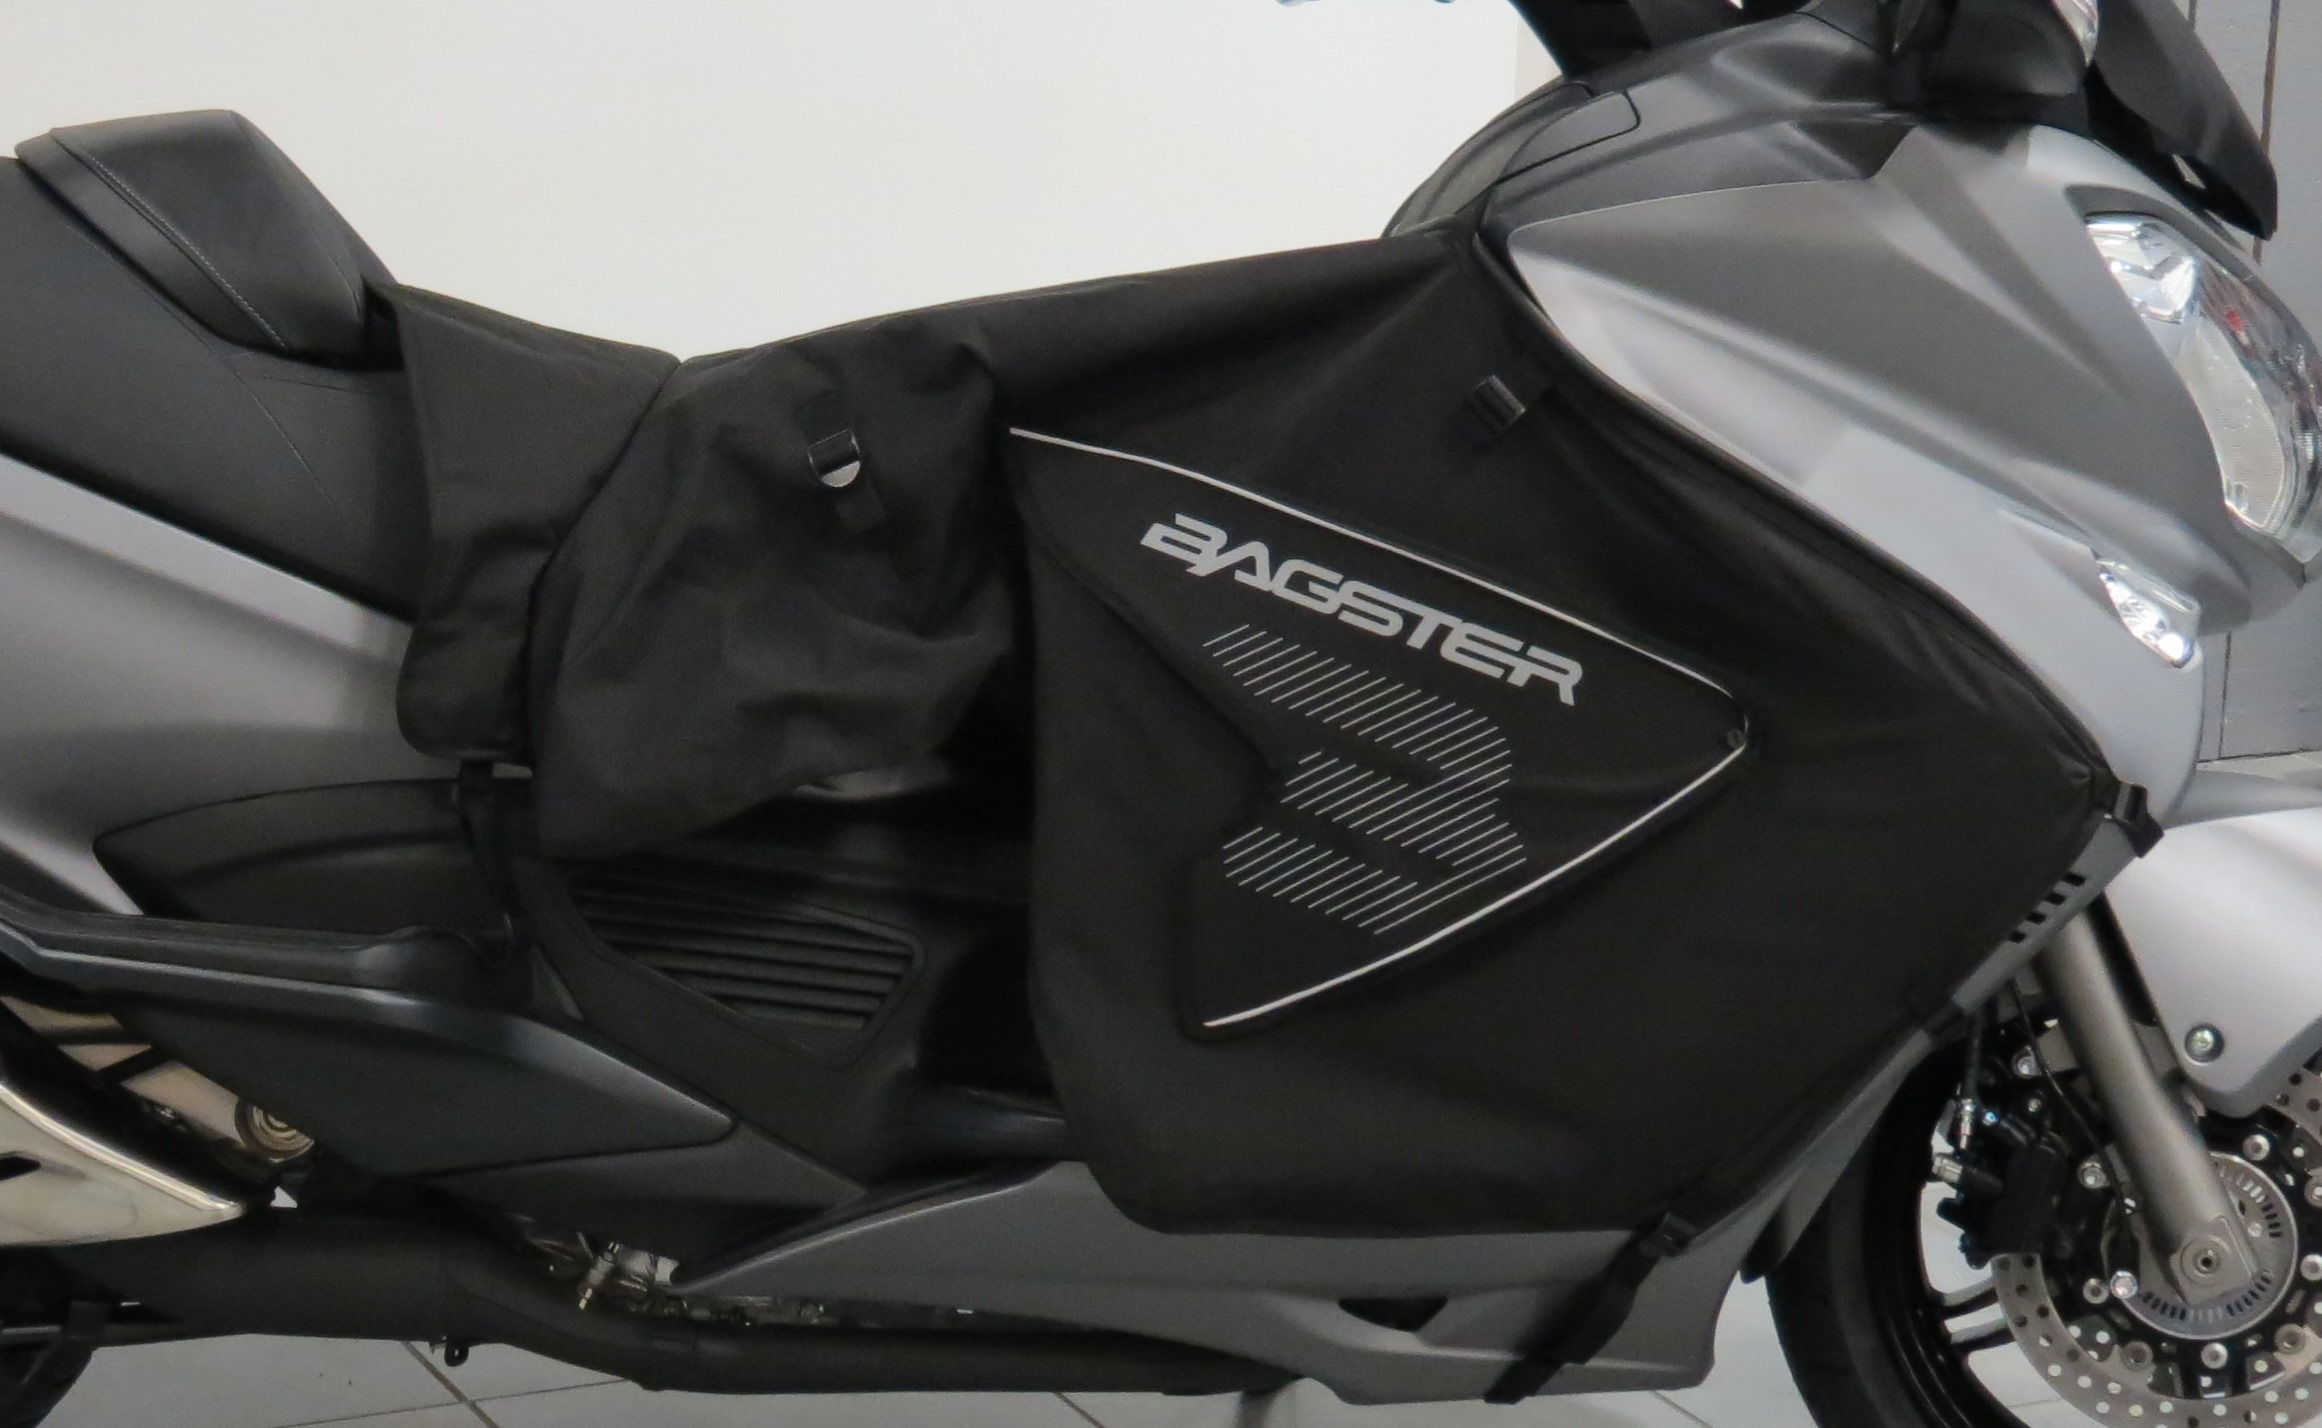 BURGMAN 650 WINTER EDITION